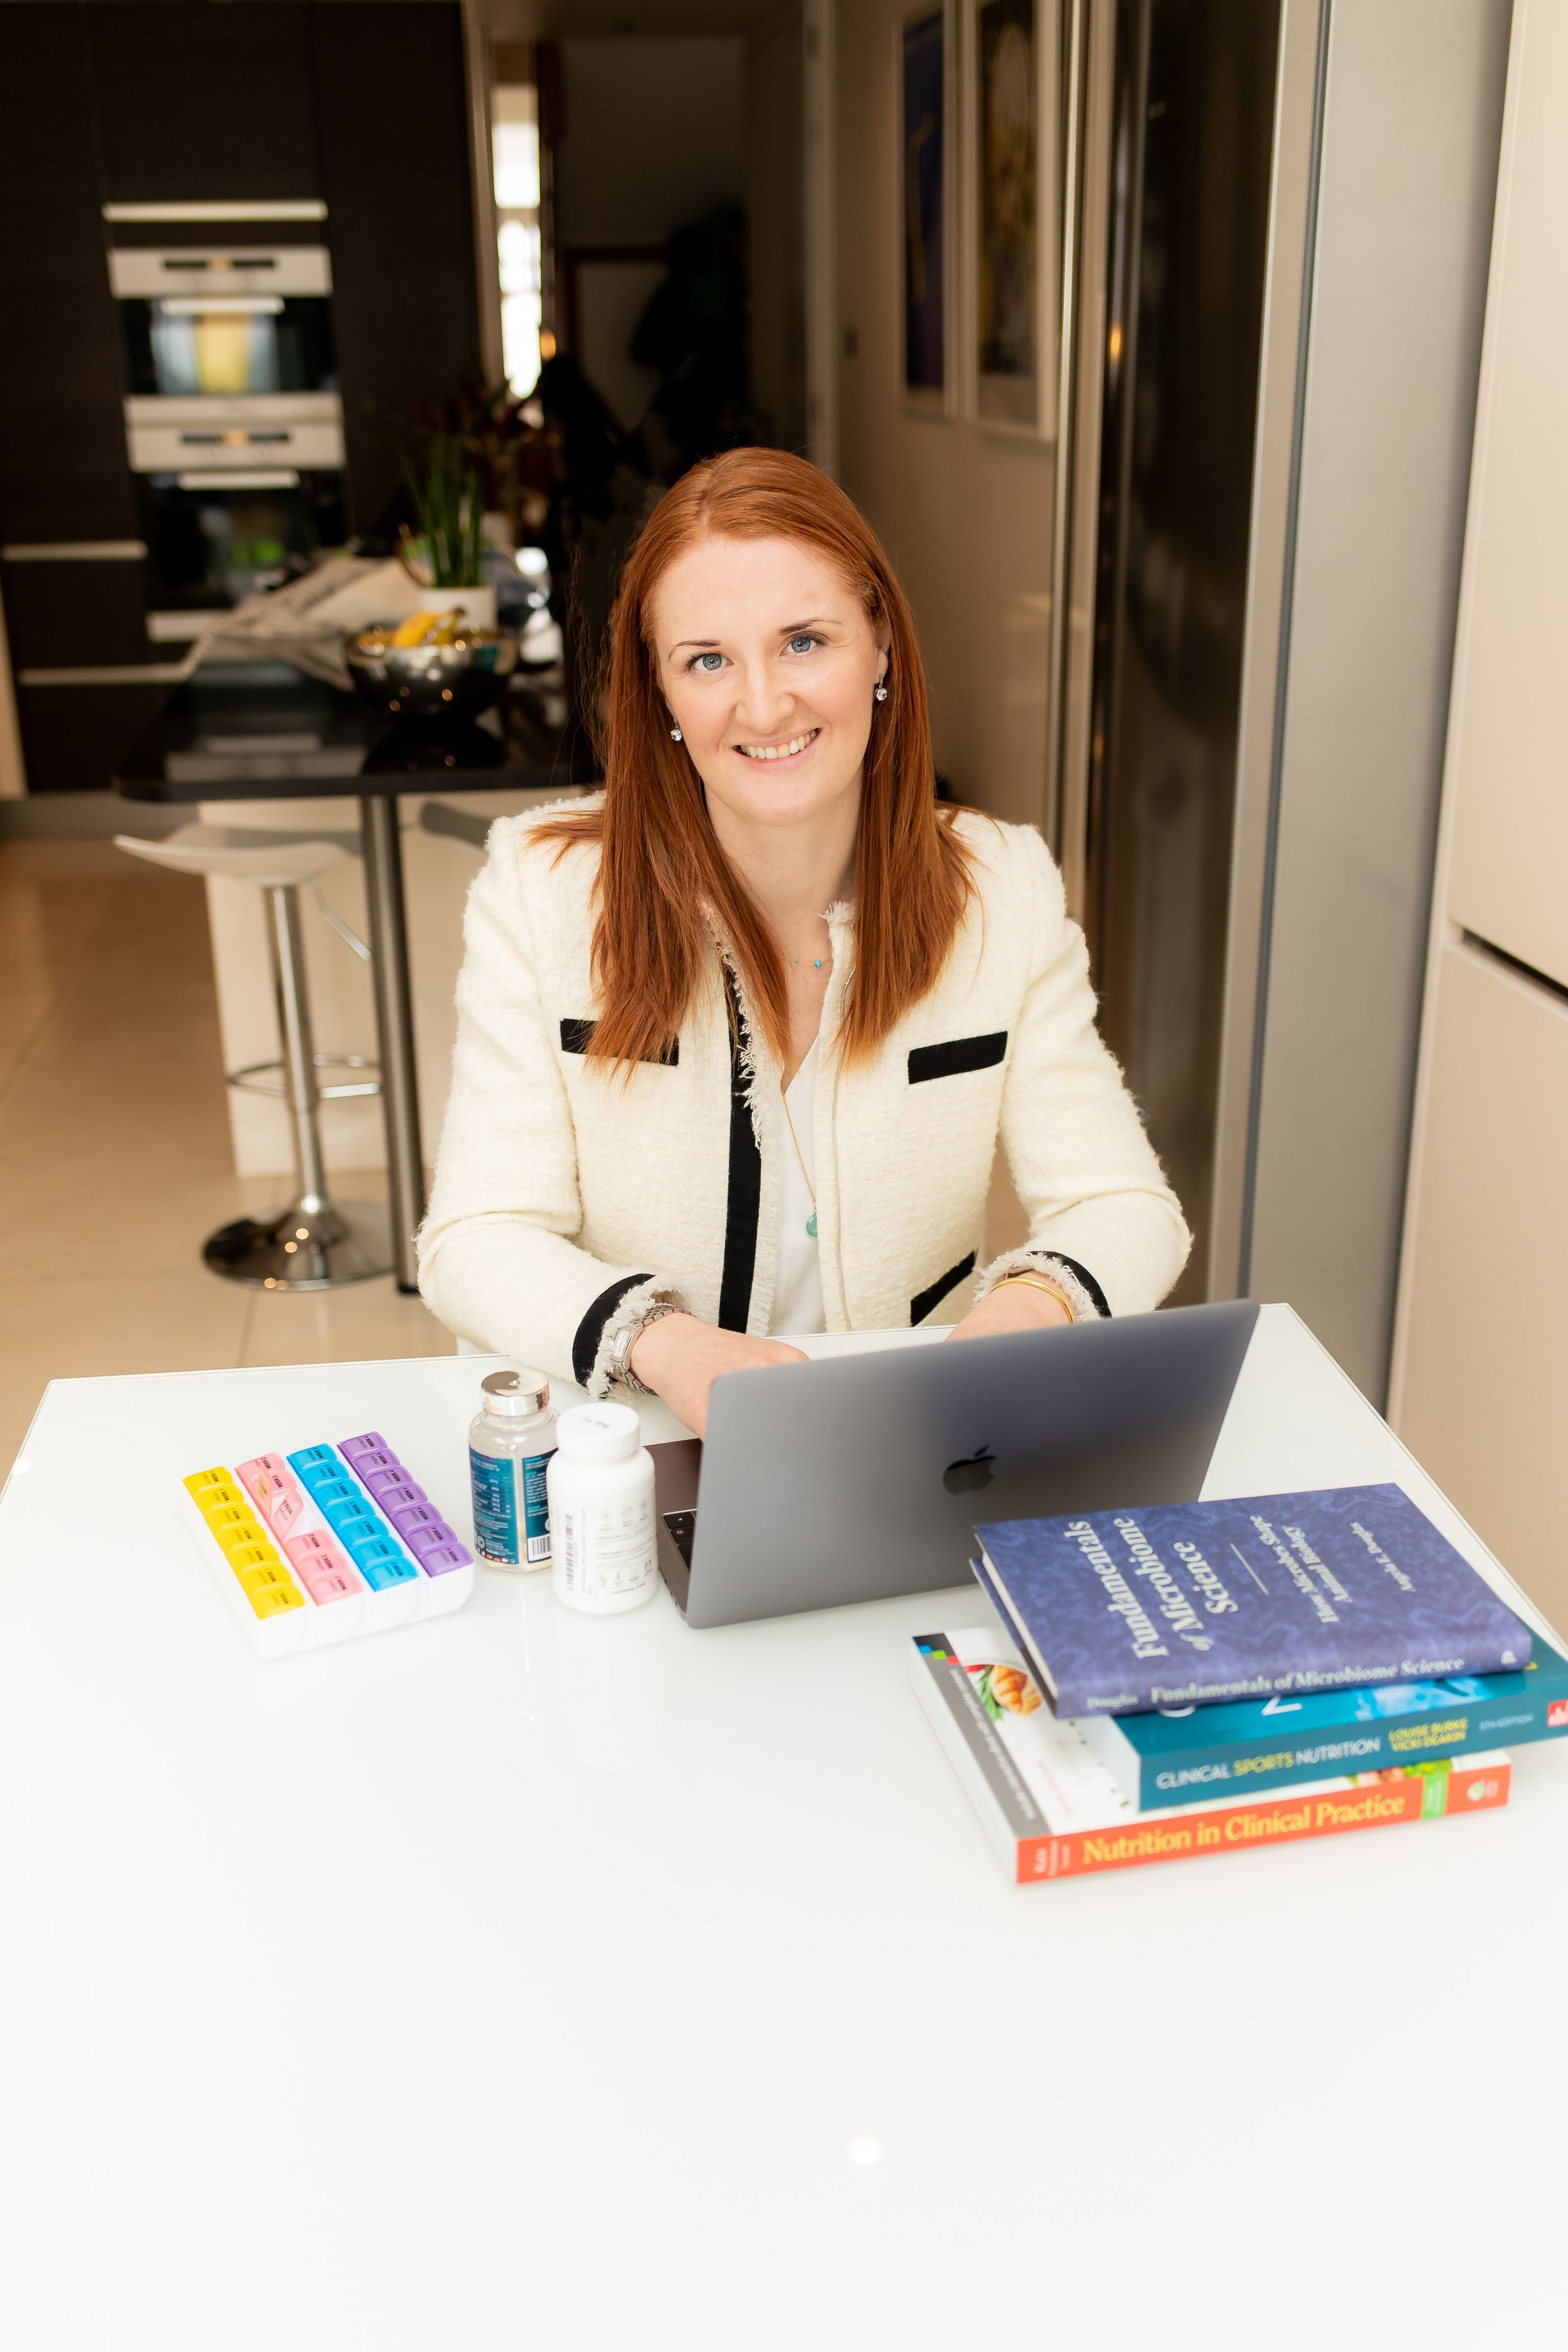 Nutritionalist sits at her table with her laptop, supplements and reference books - Corporate Photography